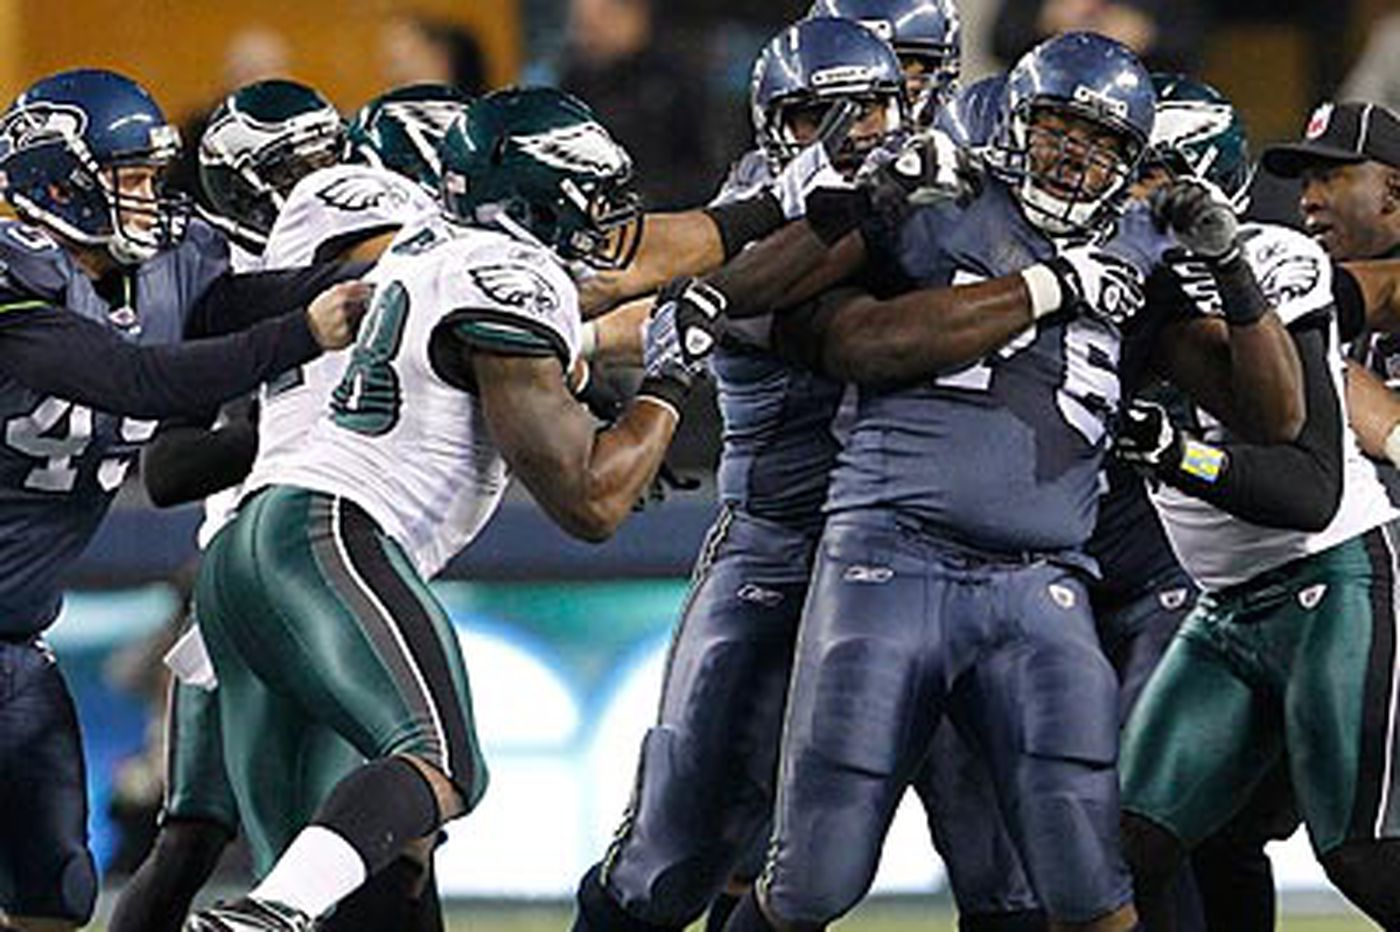 Eagles Notes: Eagles' Cole defends takedown of Seahawks' Okung